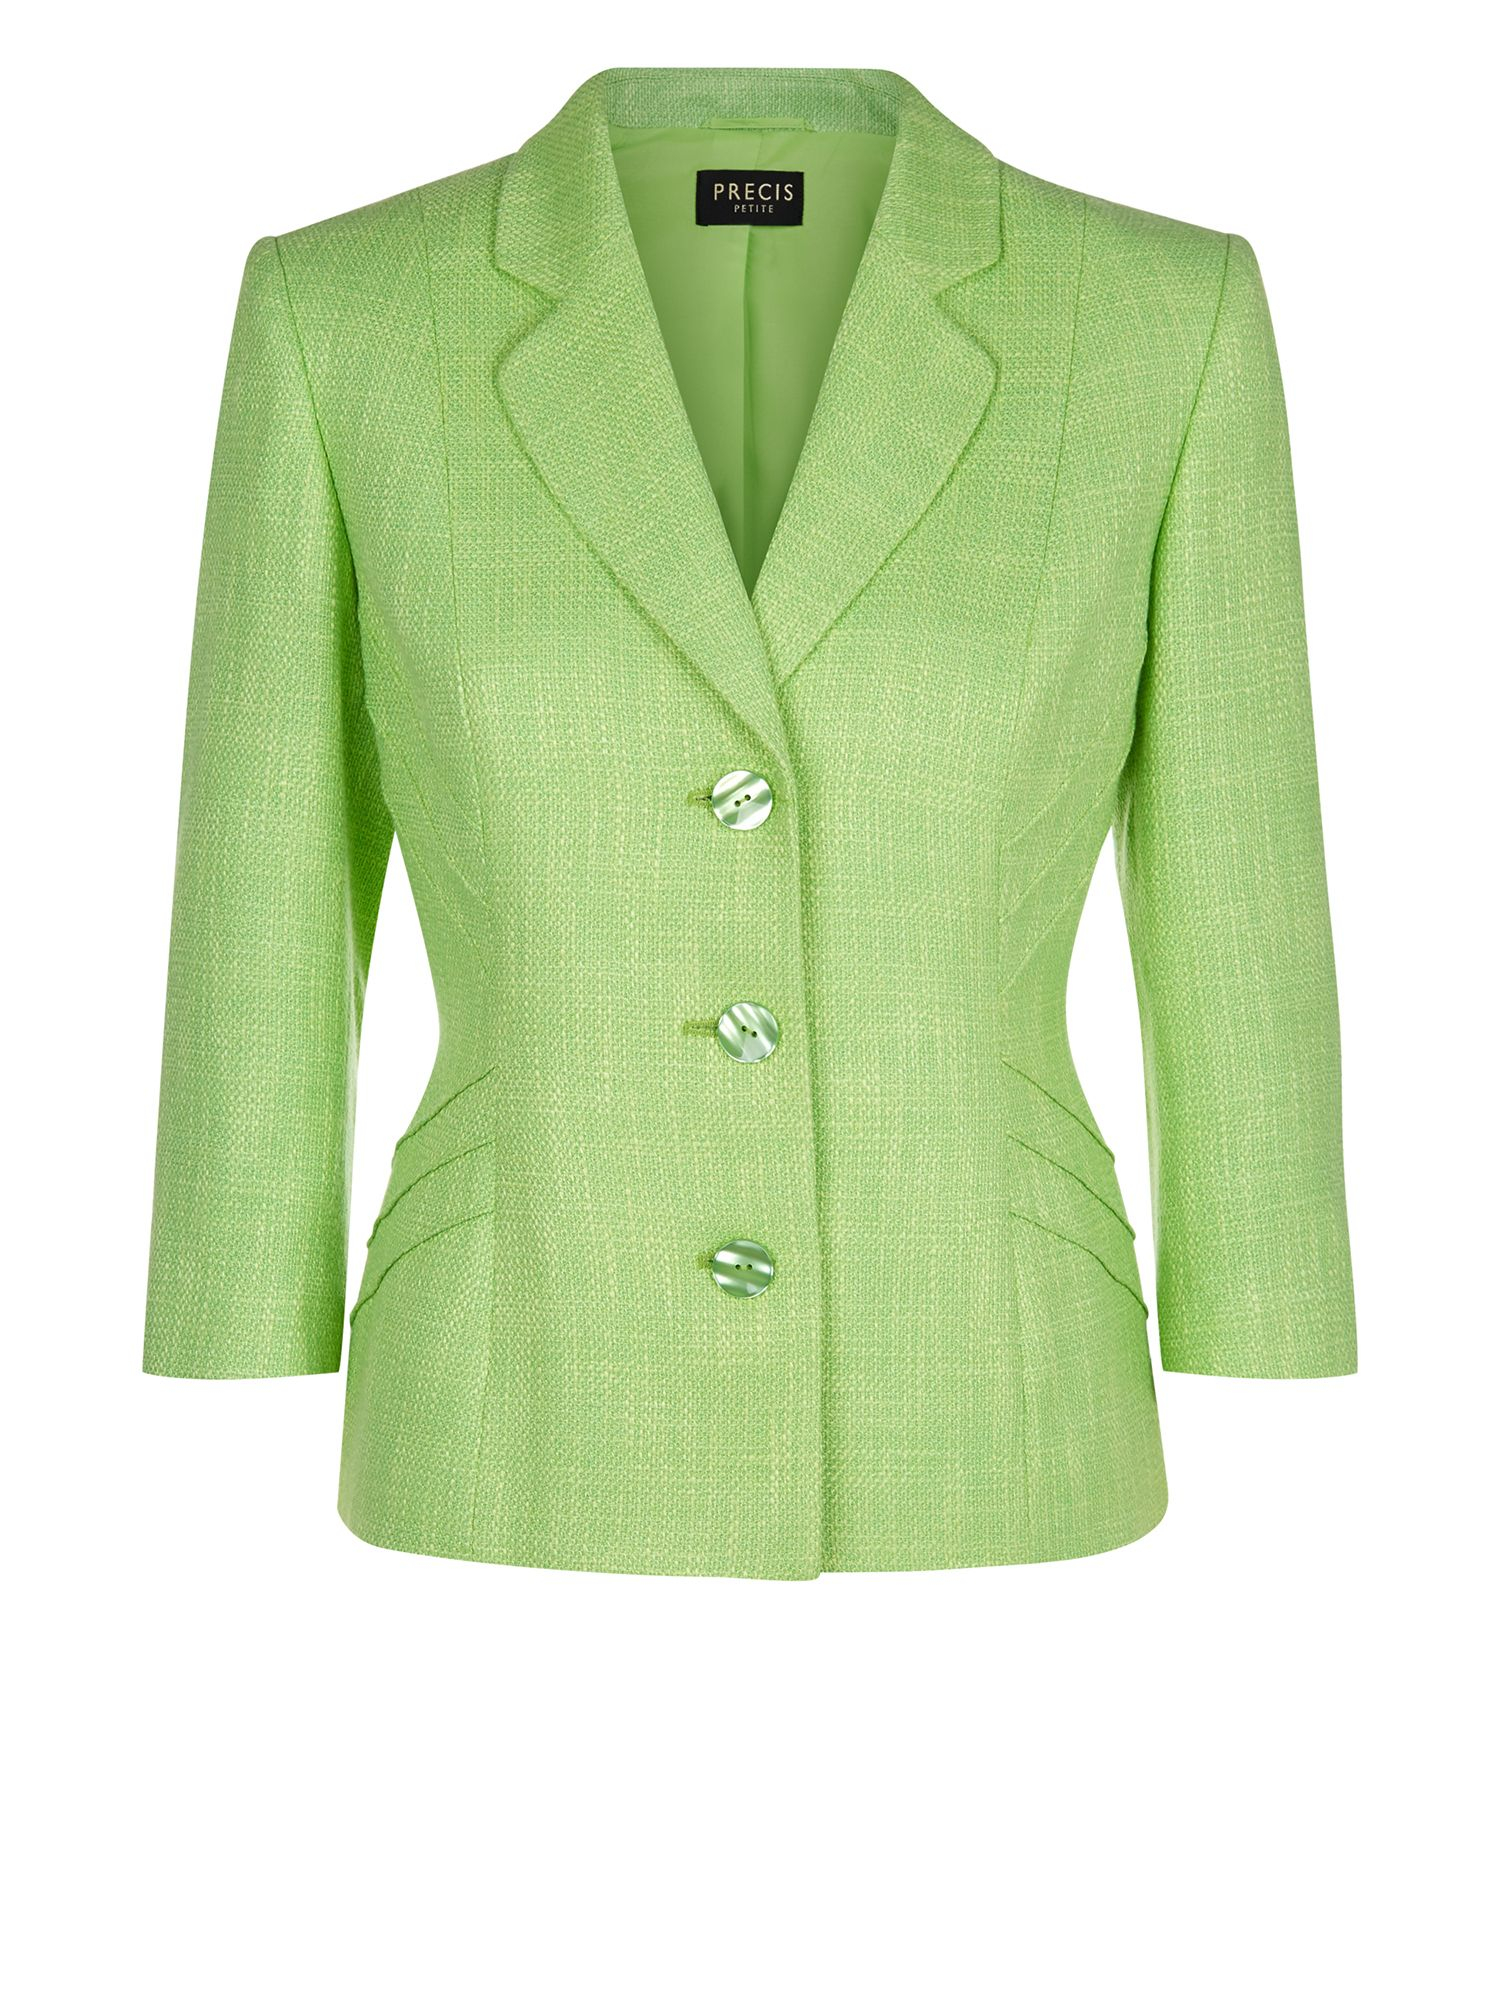 Precis petite Apple Green Tweed Jacket in Green | Lyst